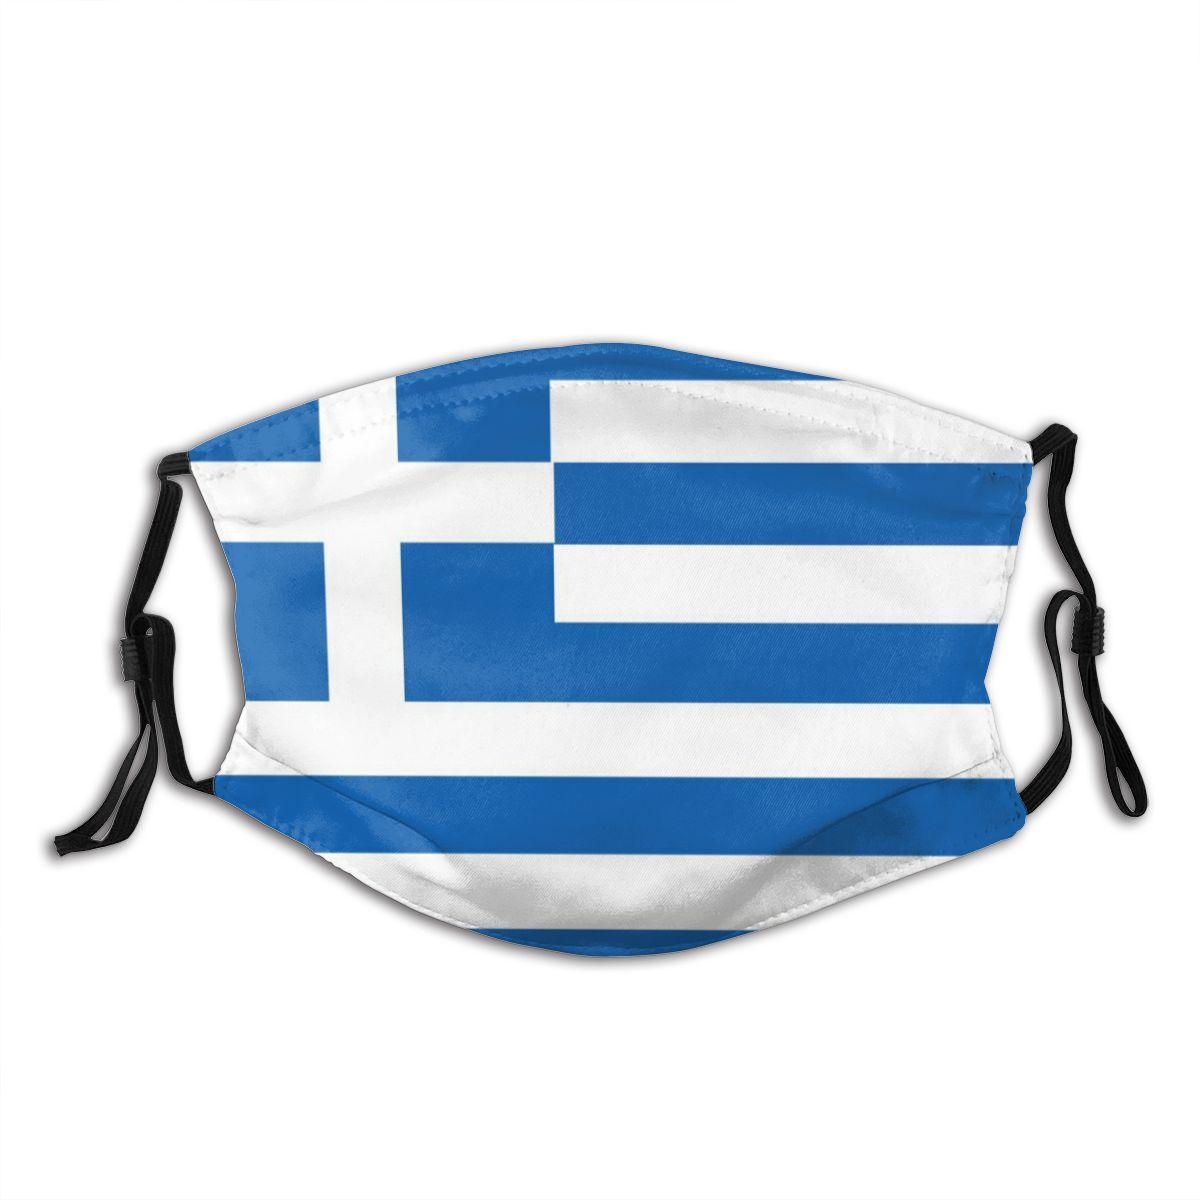 Greek National Flag Greece Reusable Mouth Face Mask Anti Bacterial Dustproof Mask With Filter Protection Cover Respirator Muffle